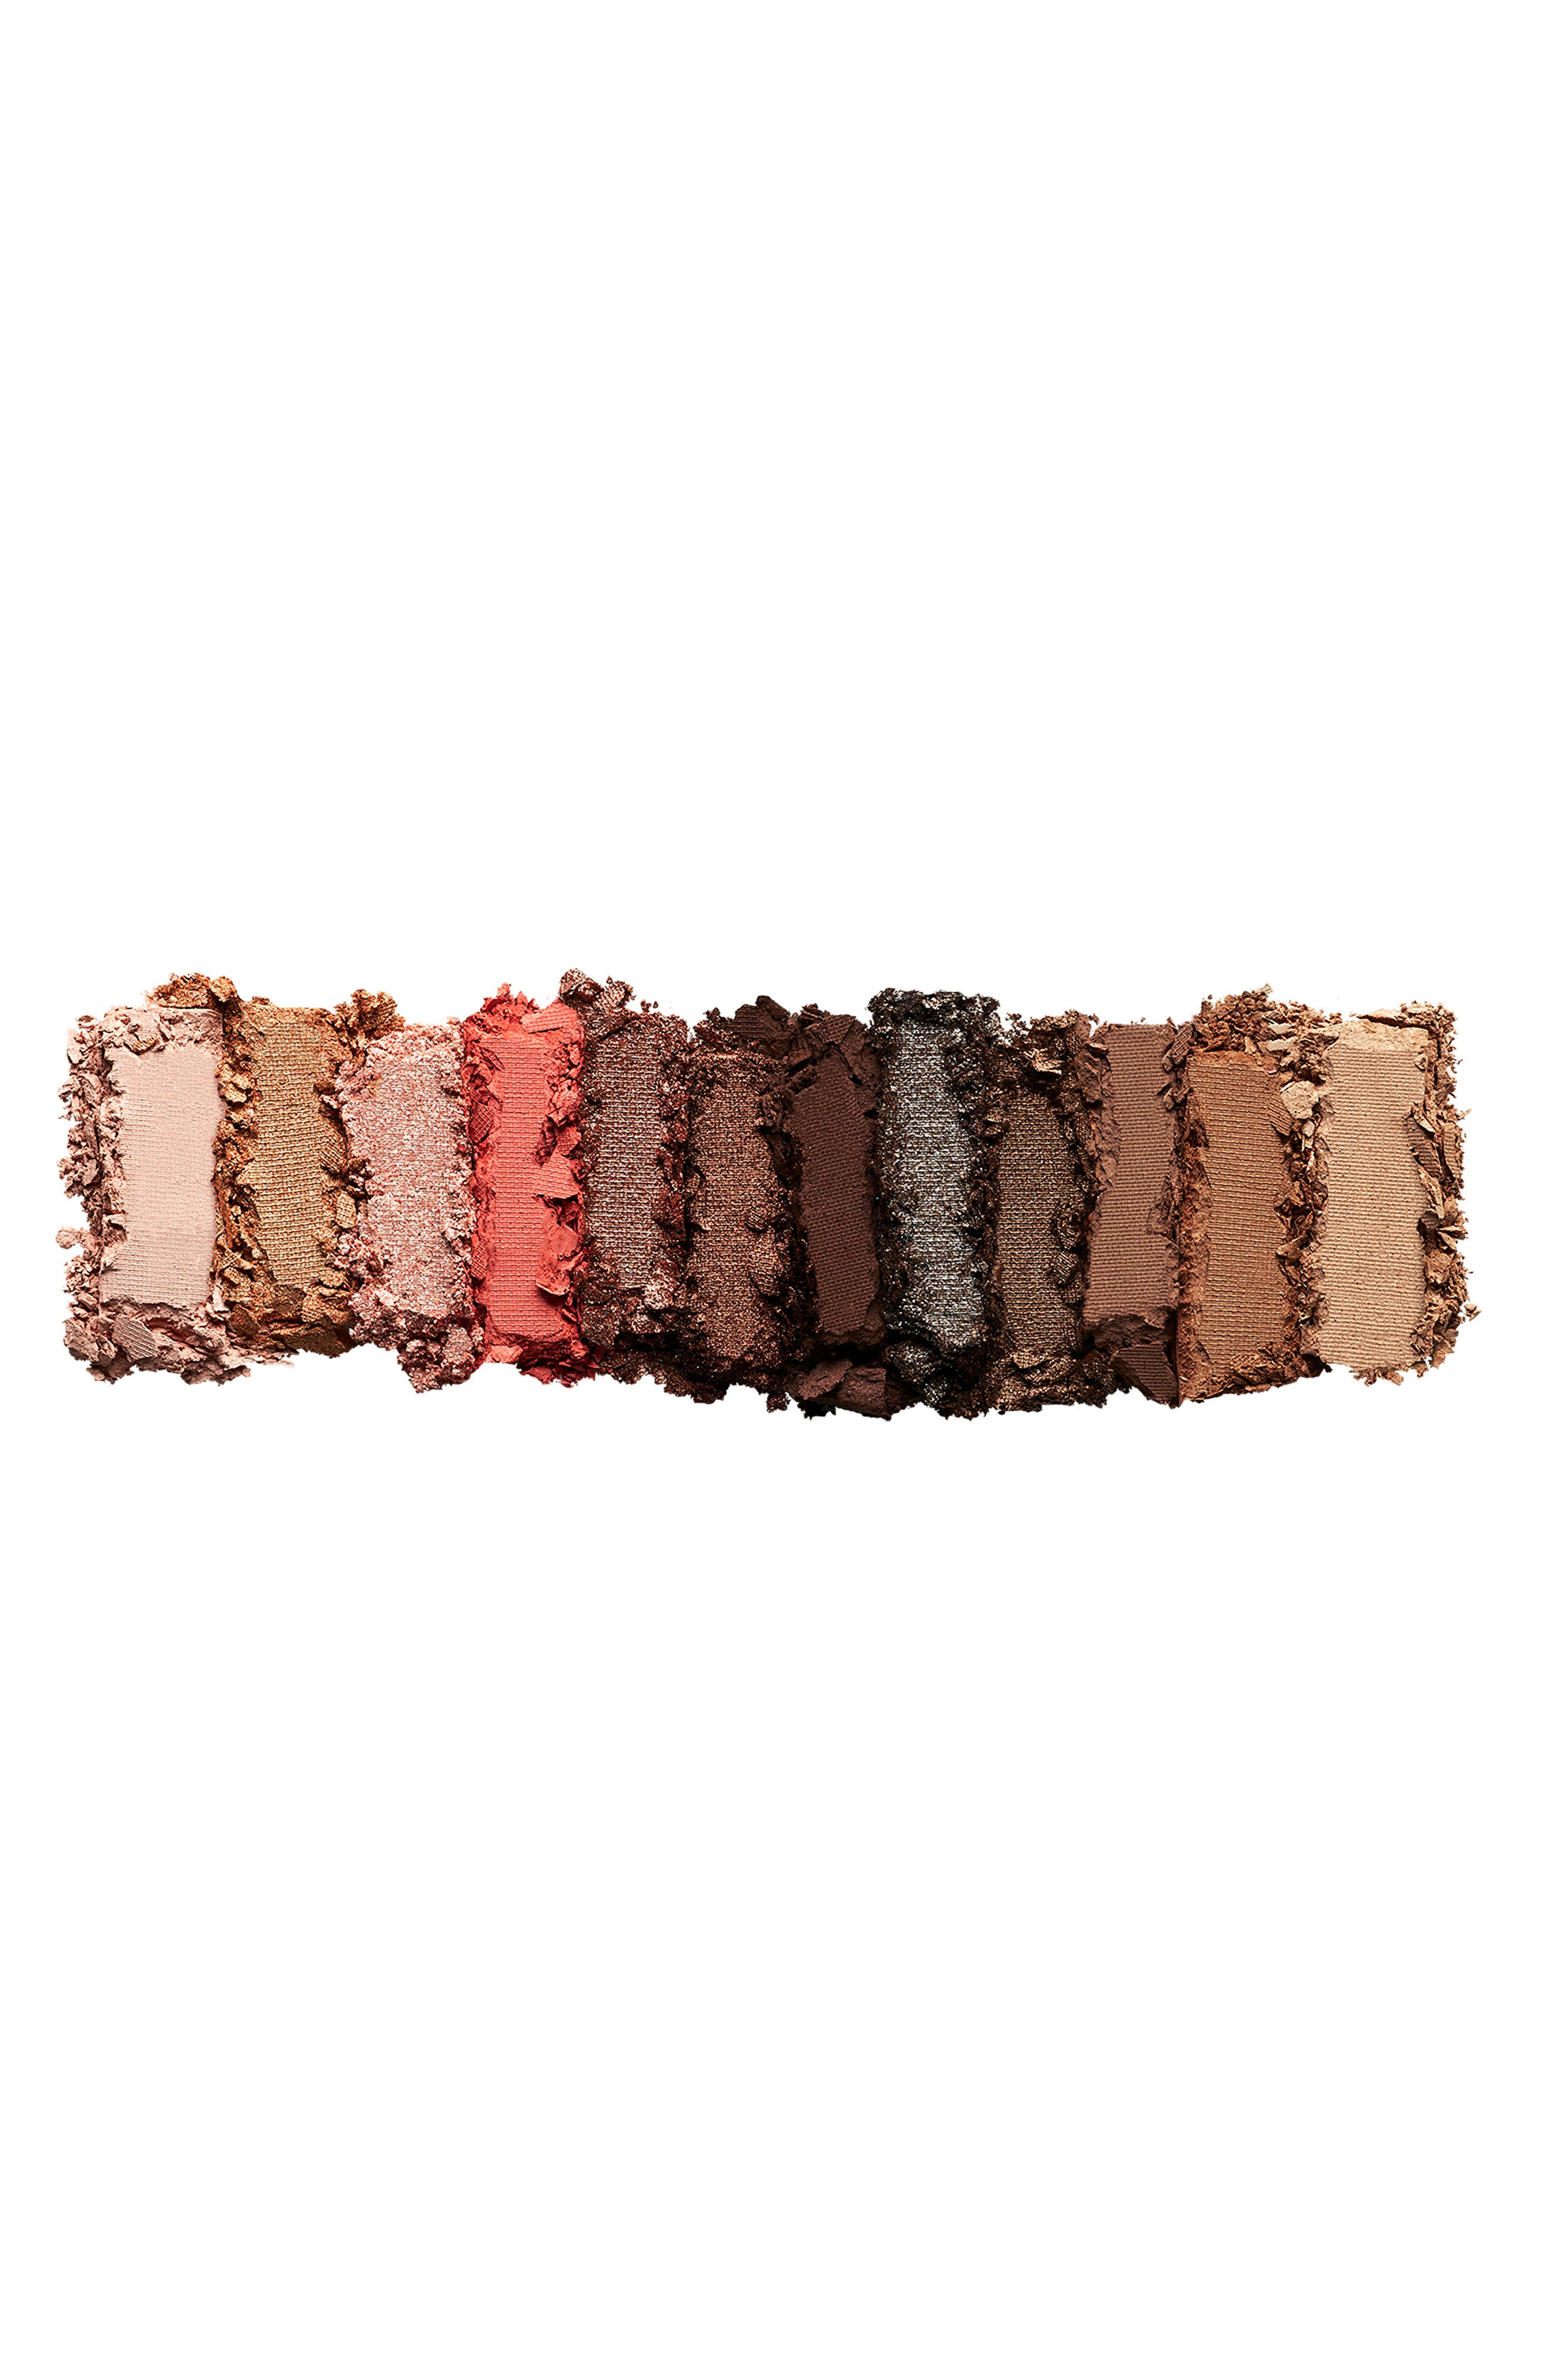 ,                             Naked Reloaded Eyeshadow Palette,                             Alternate thumbnail 6, color,                             NO COLOR